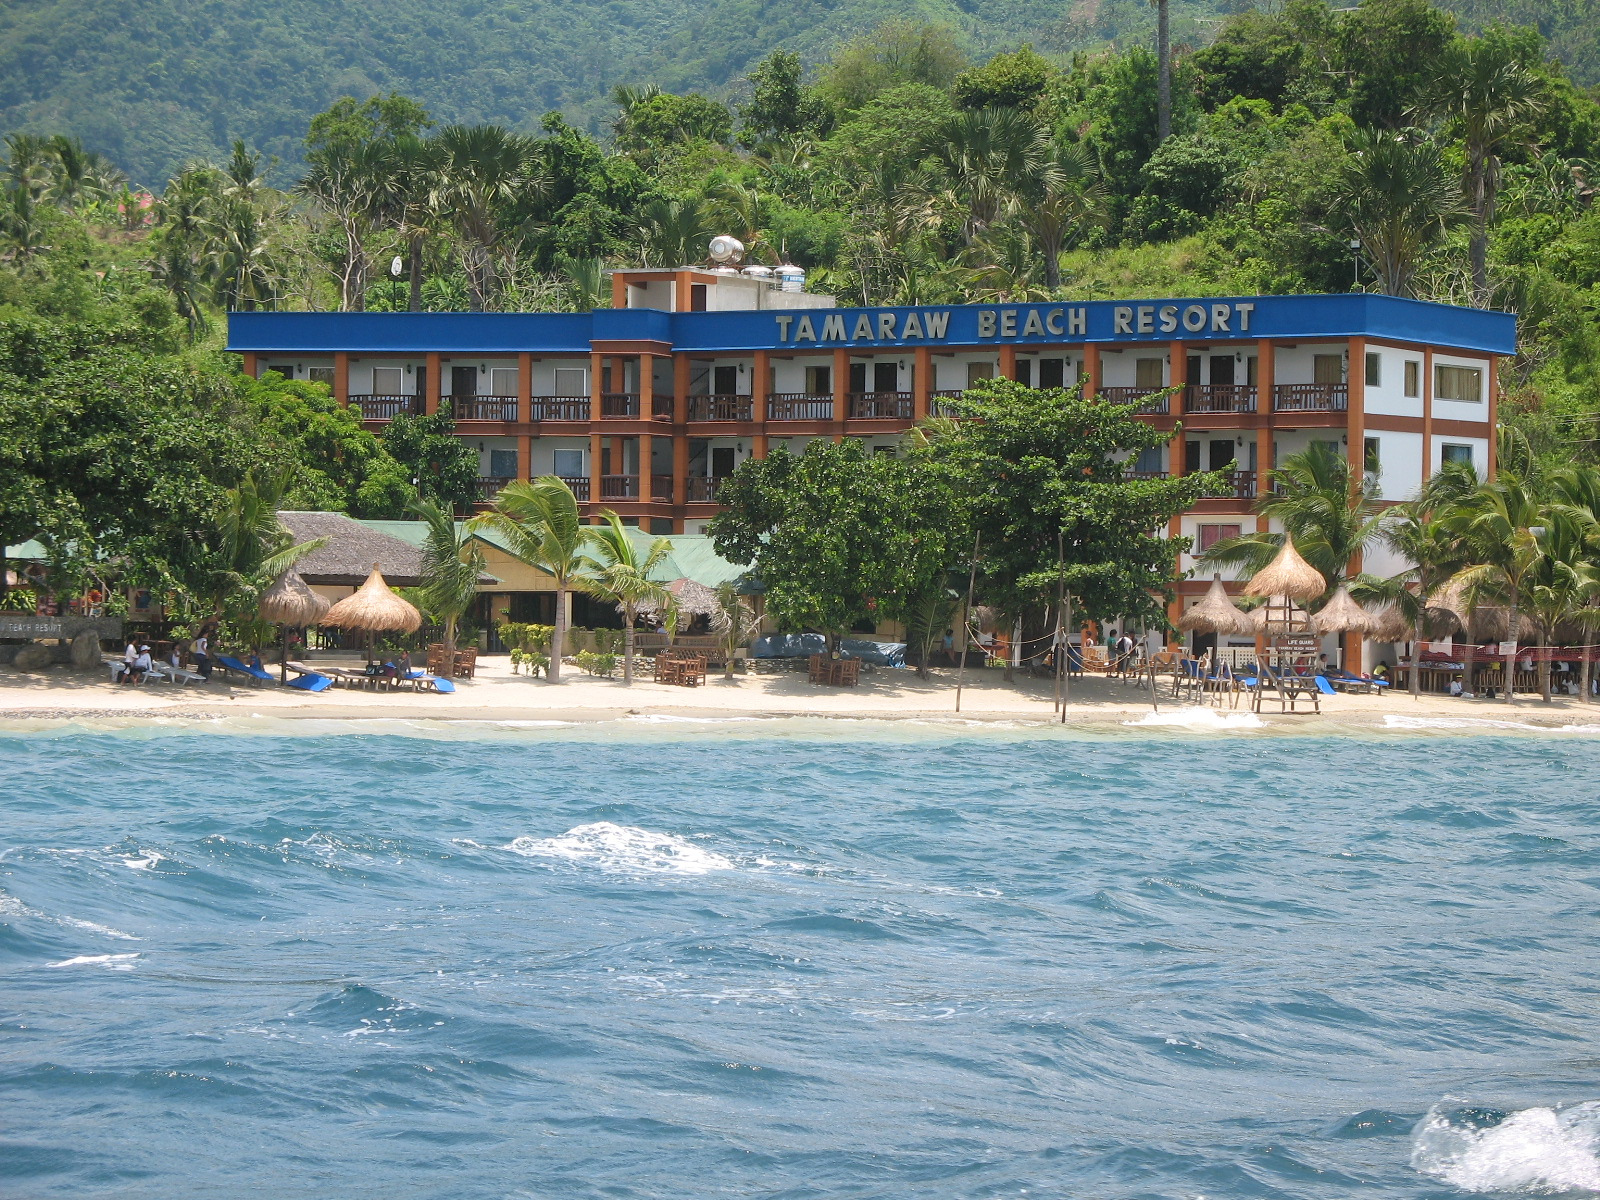 how to go to tamaraw beach resort